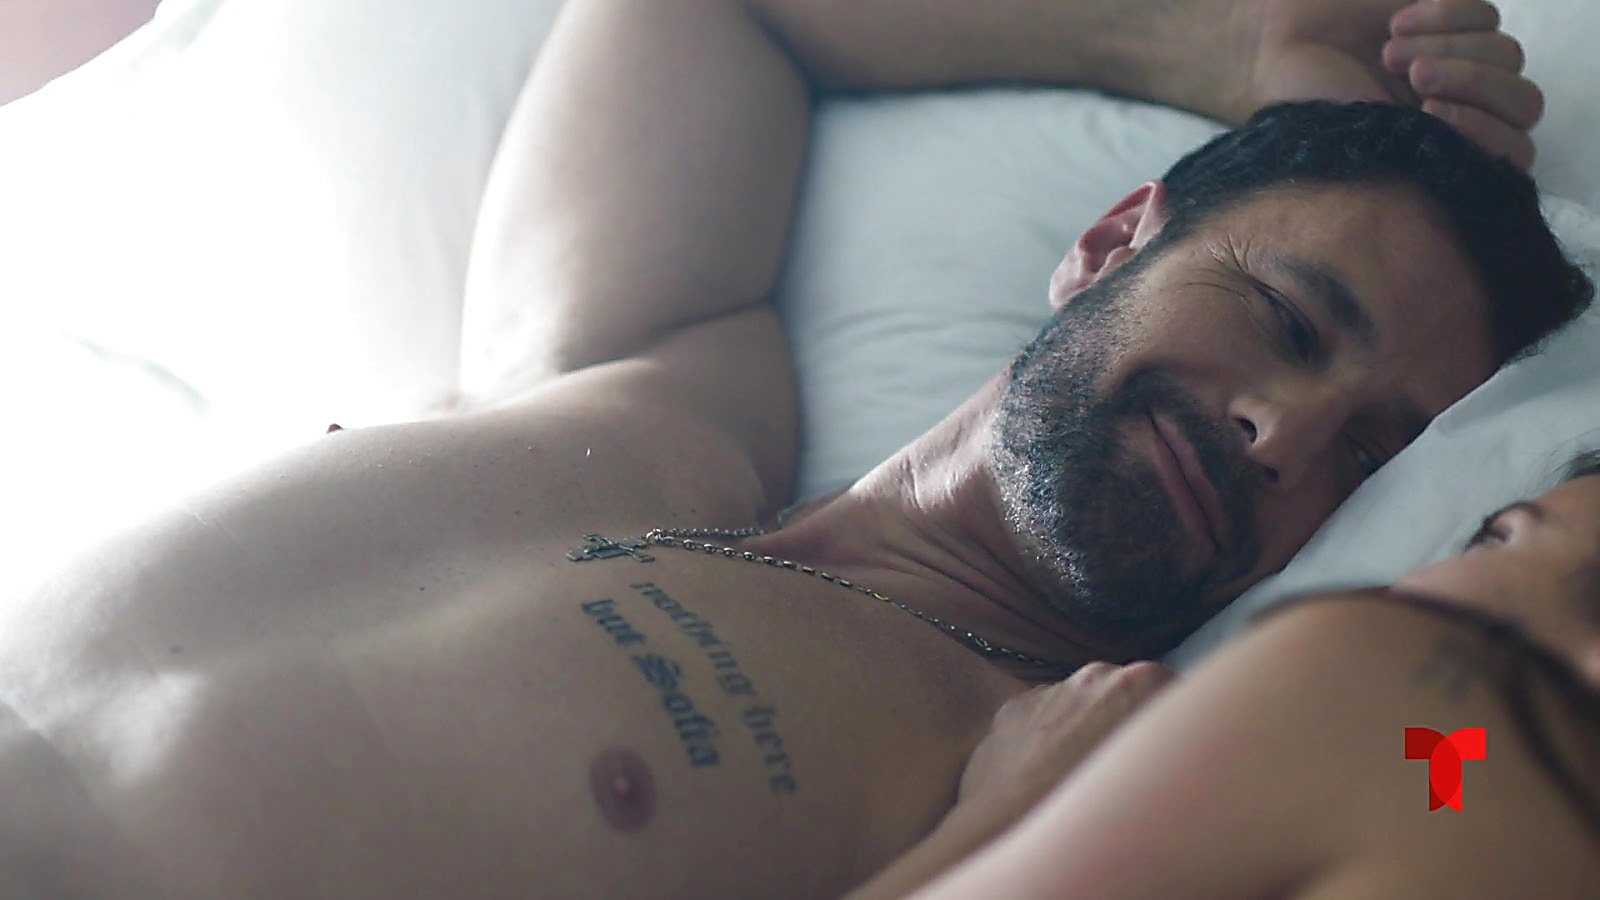 Raoul Bova sexy shirtless scene July 27, 2019, 7am